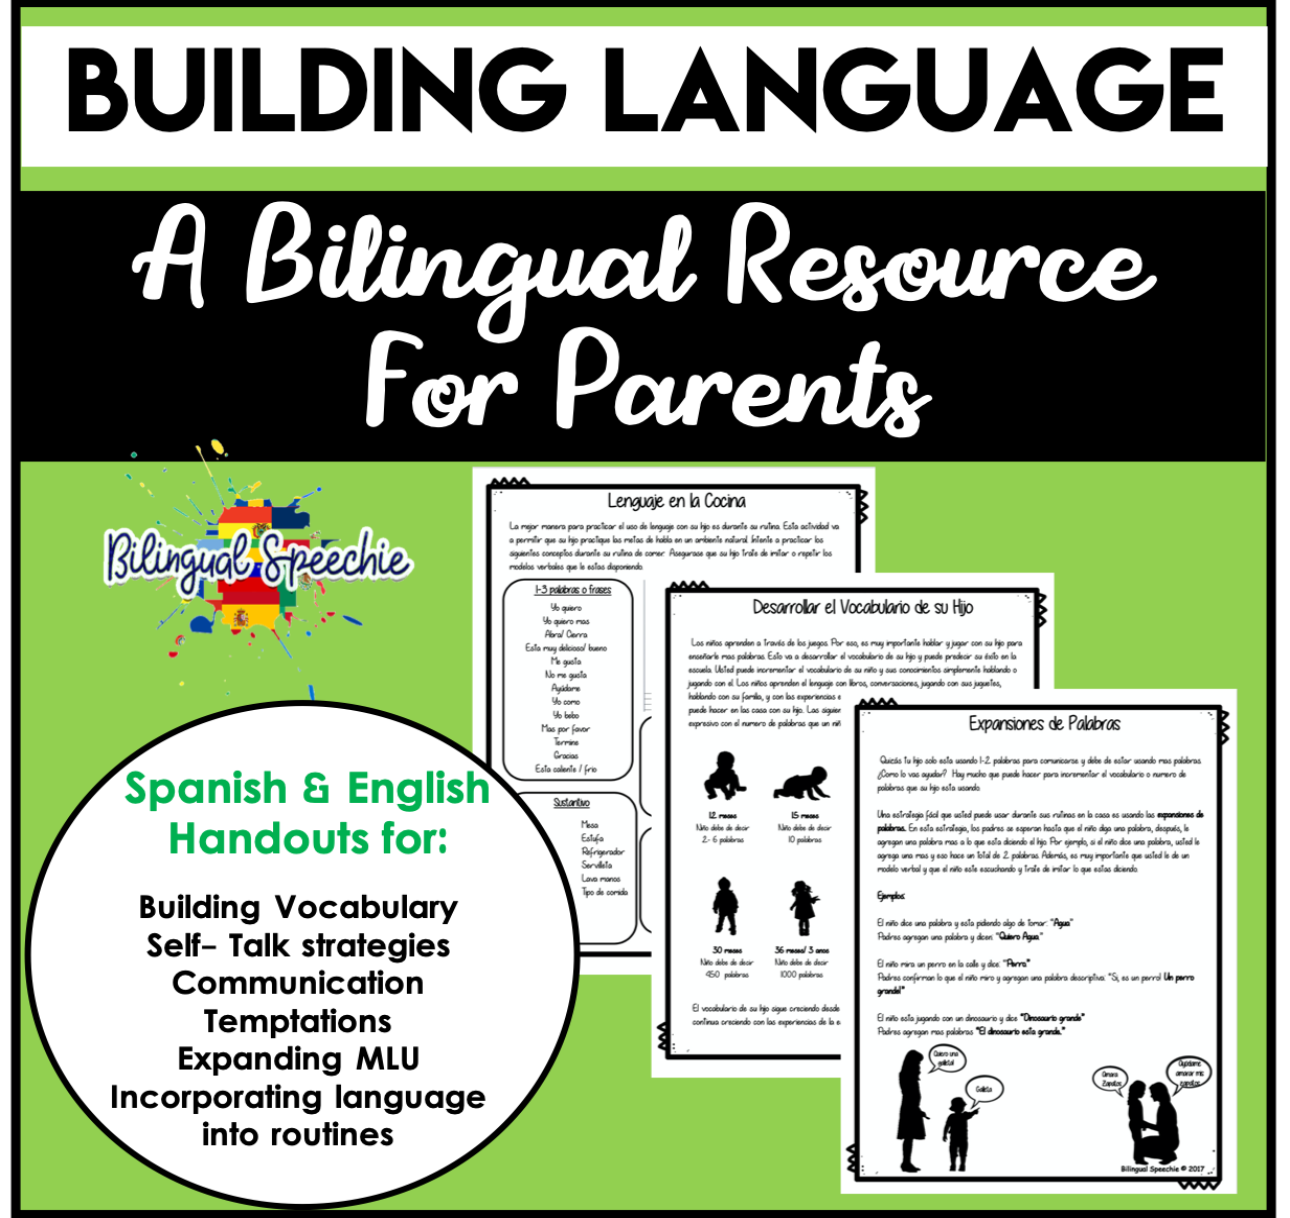 Building Language | Bilingual (Spanish & English) Handouts for Parents